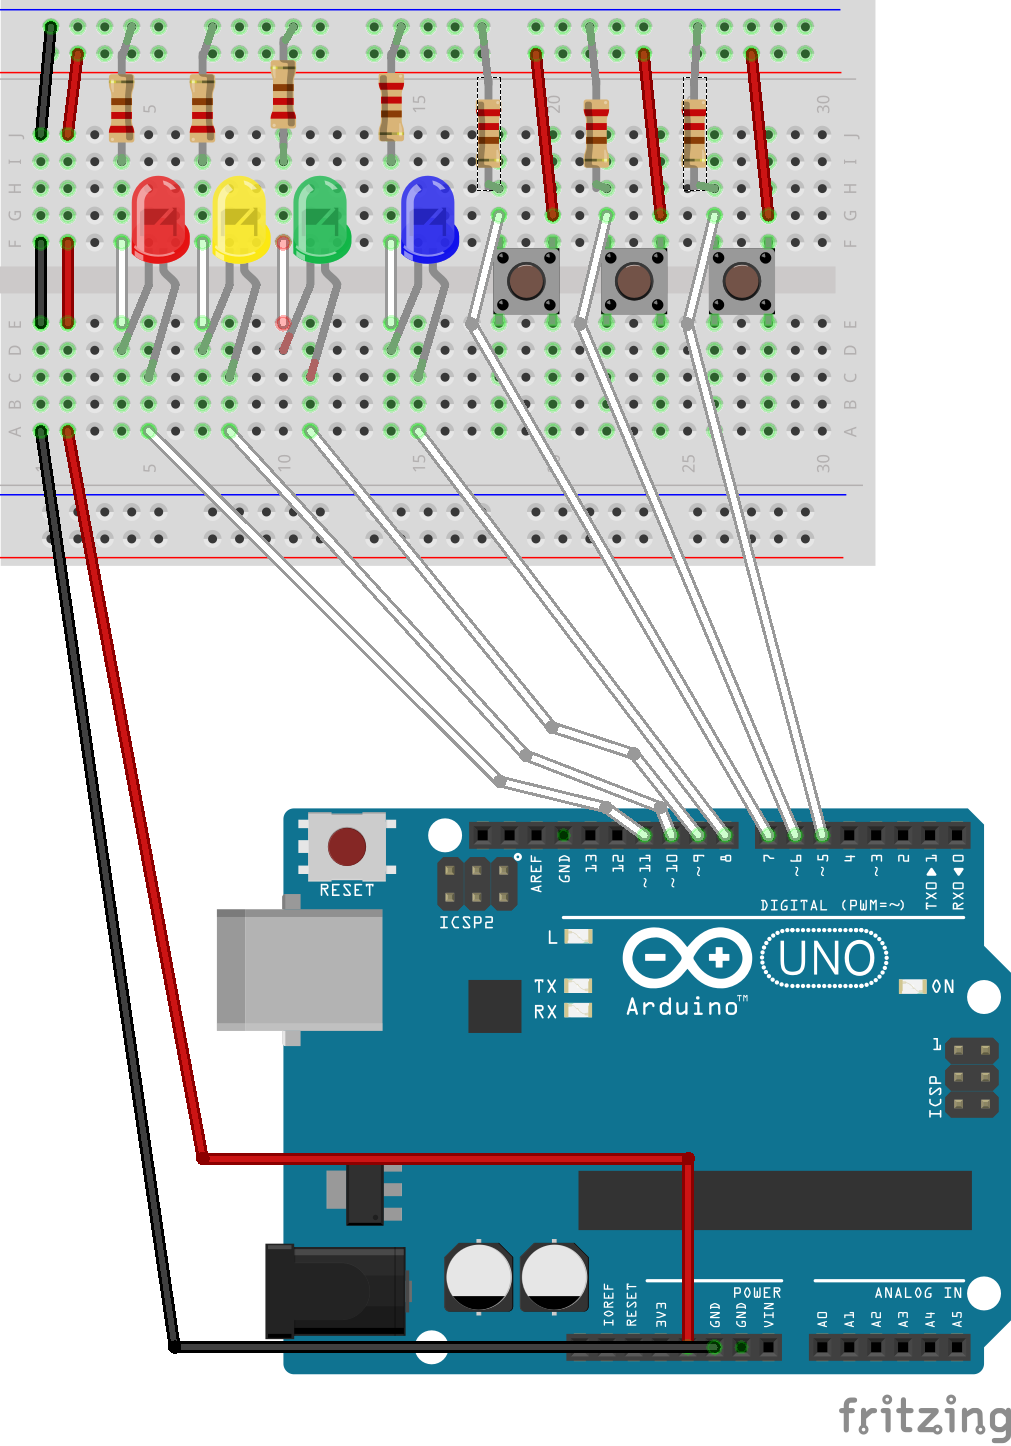 https://images.computational.nl/galleries/arduino/2015-01-14_08-48-46.png